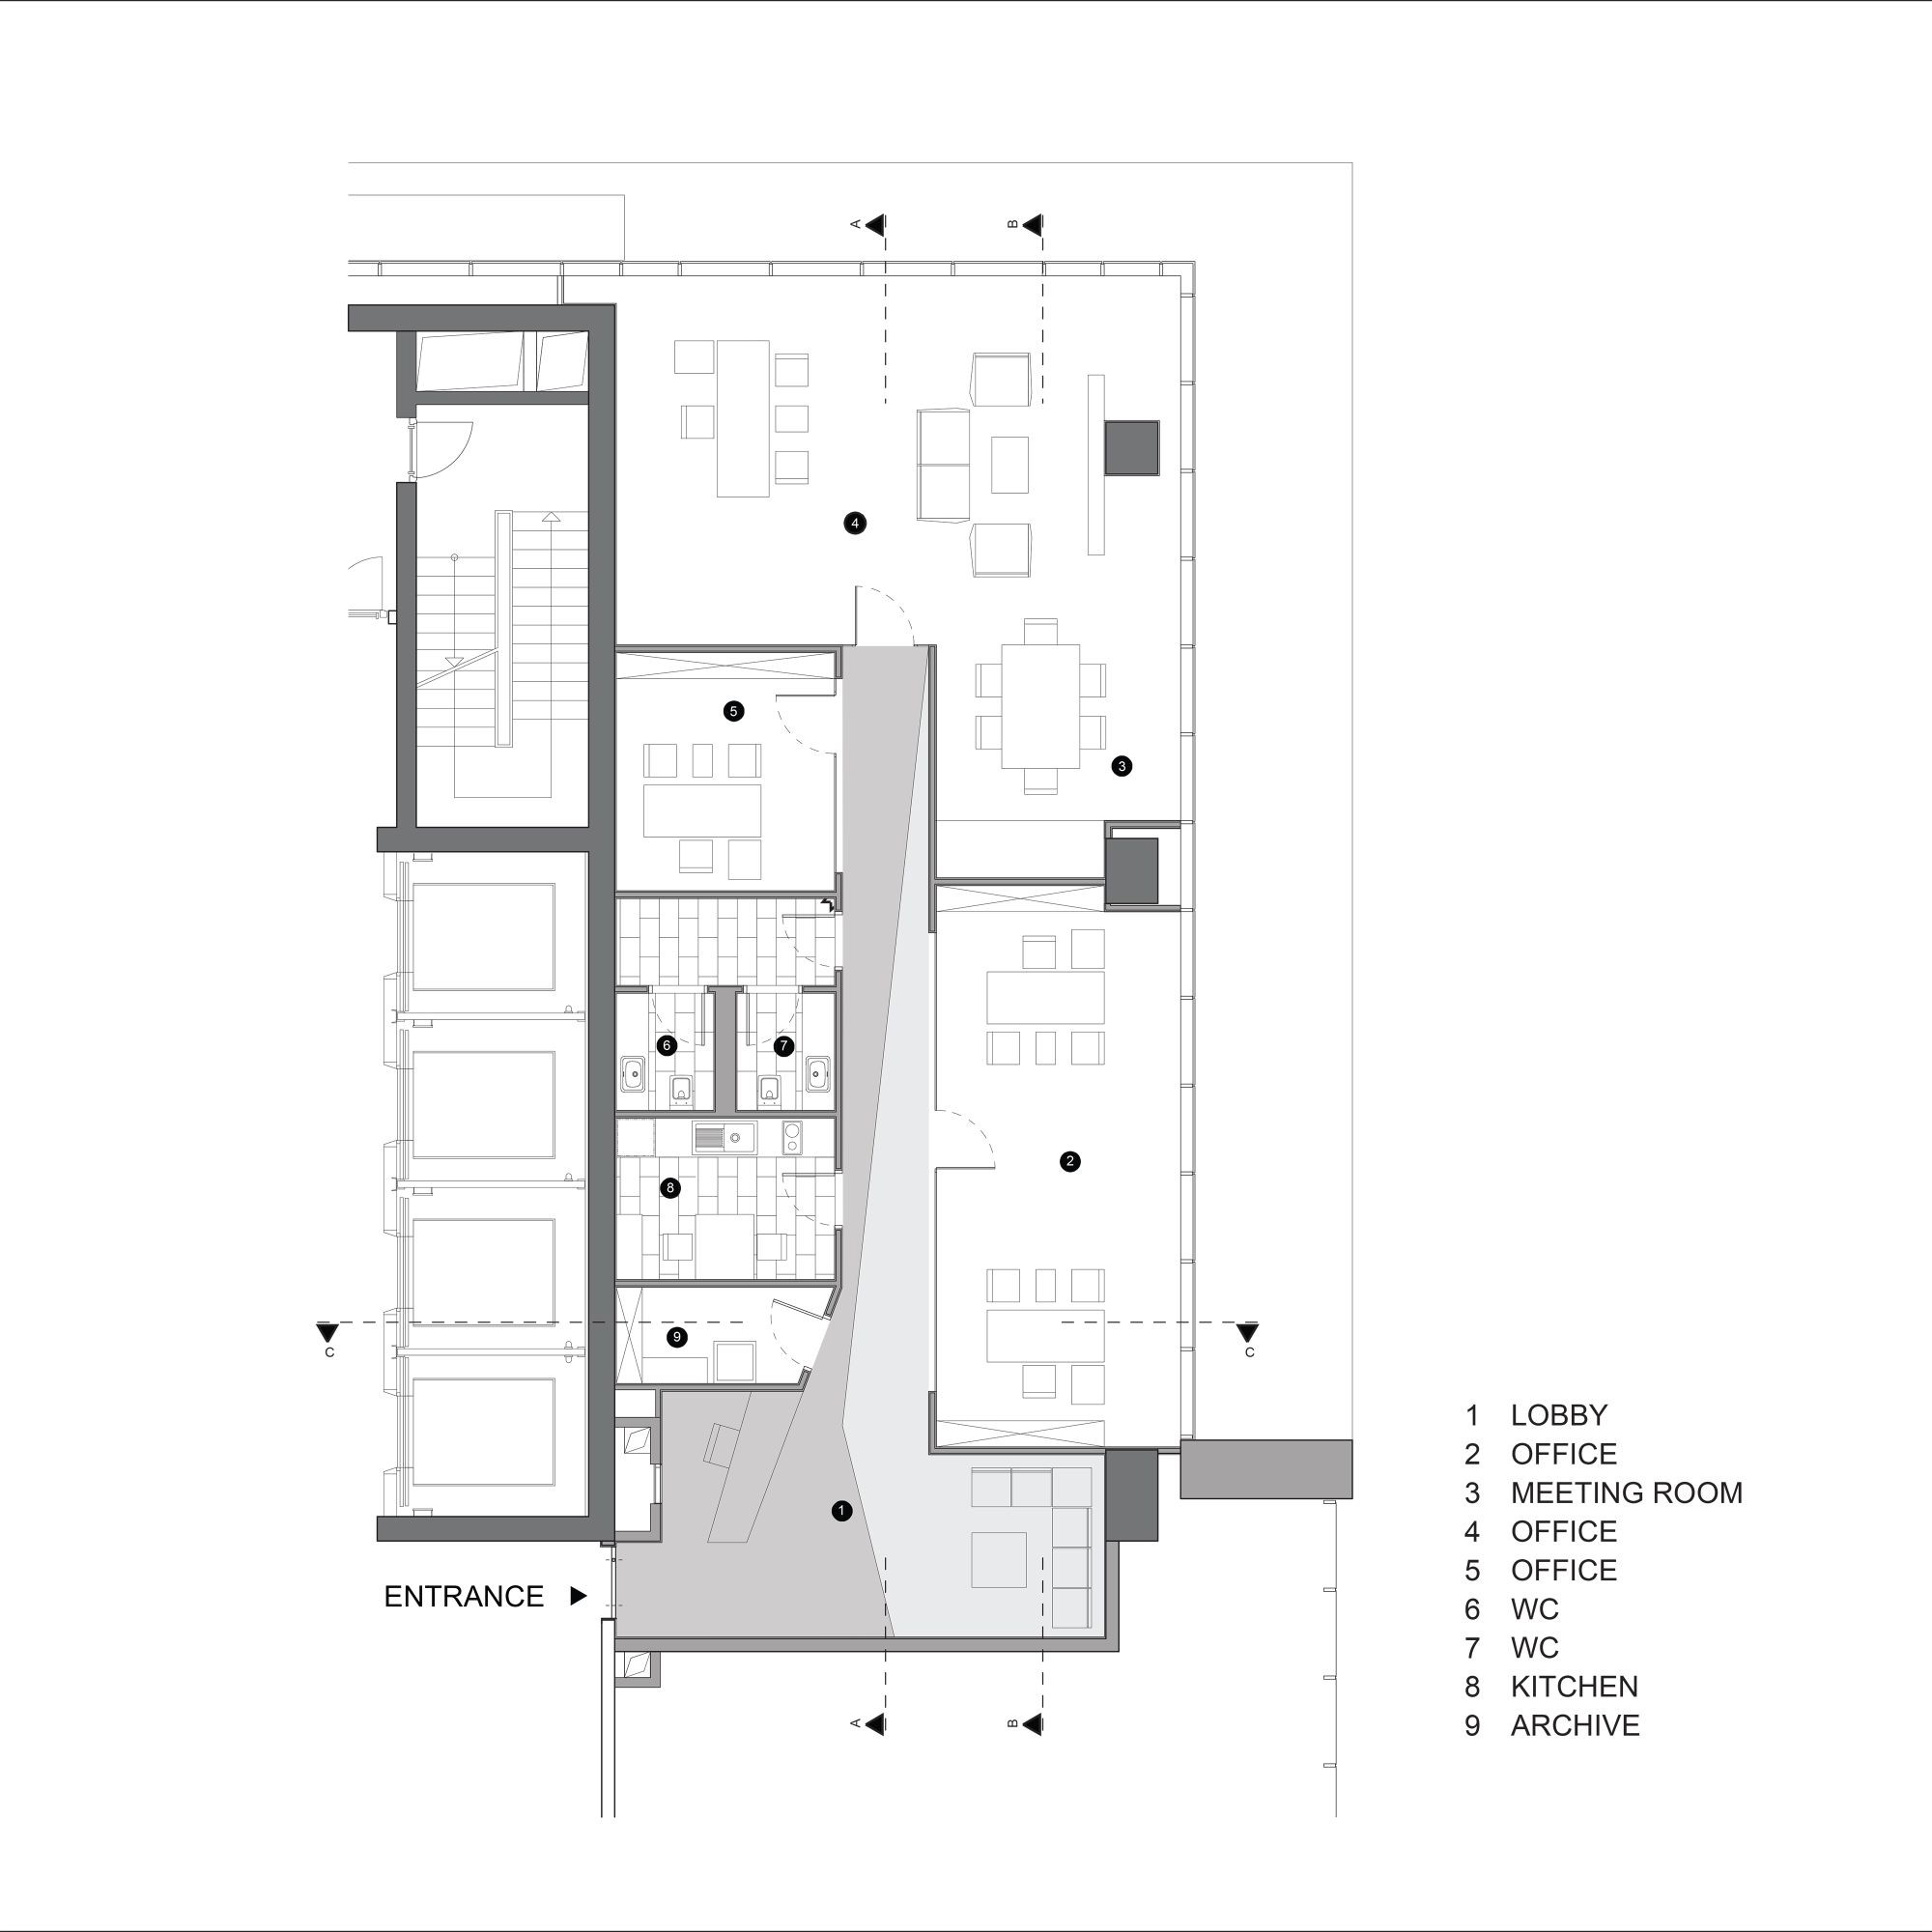 Gallery of cthb law office salon architects 12 for House plans with separate office entrance